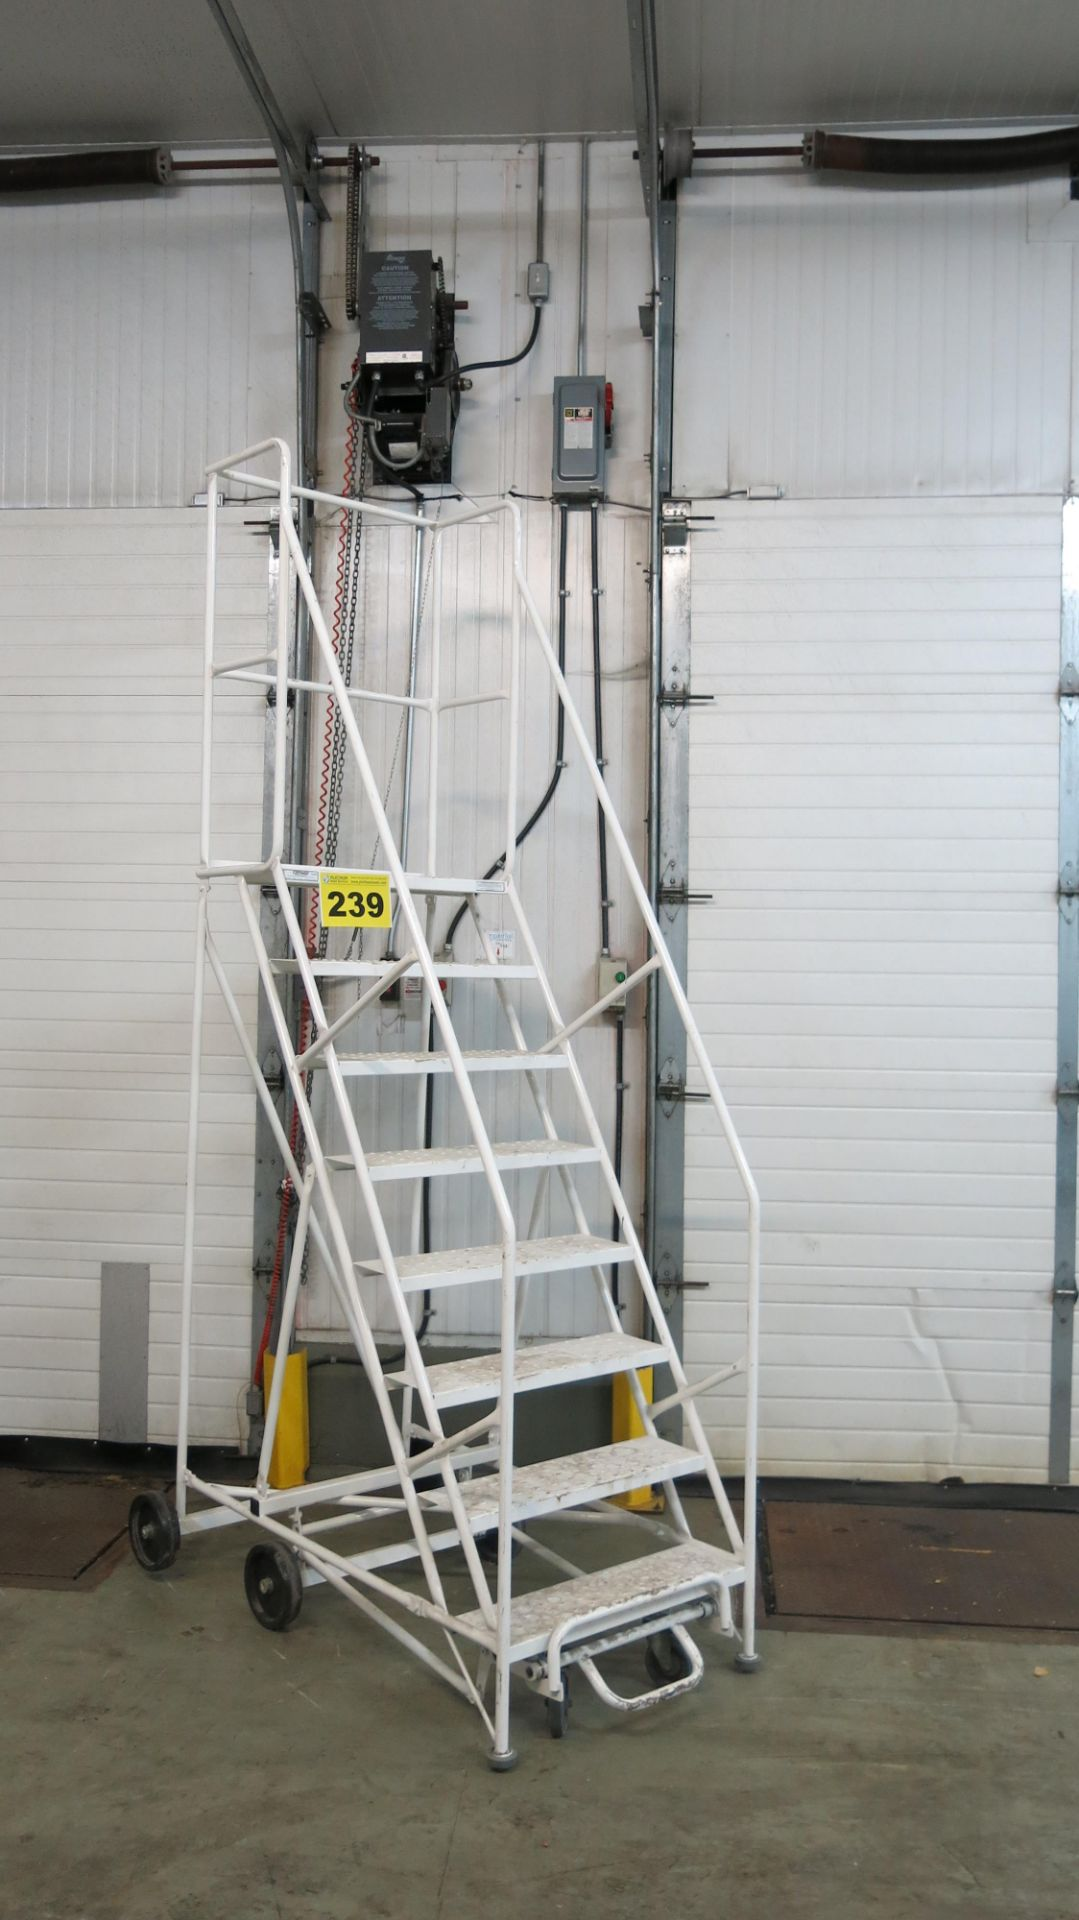 Lot 239 - CANWAY, CUSTOM, 400 LBS., ROLLING LADDER, 2015